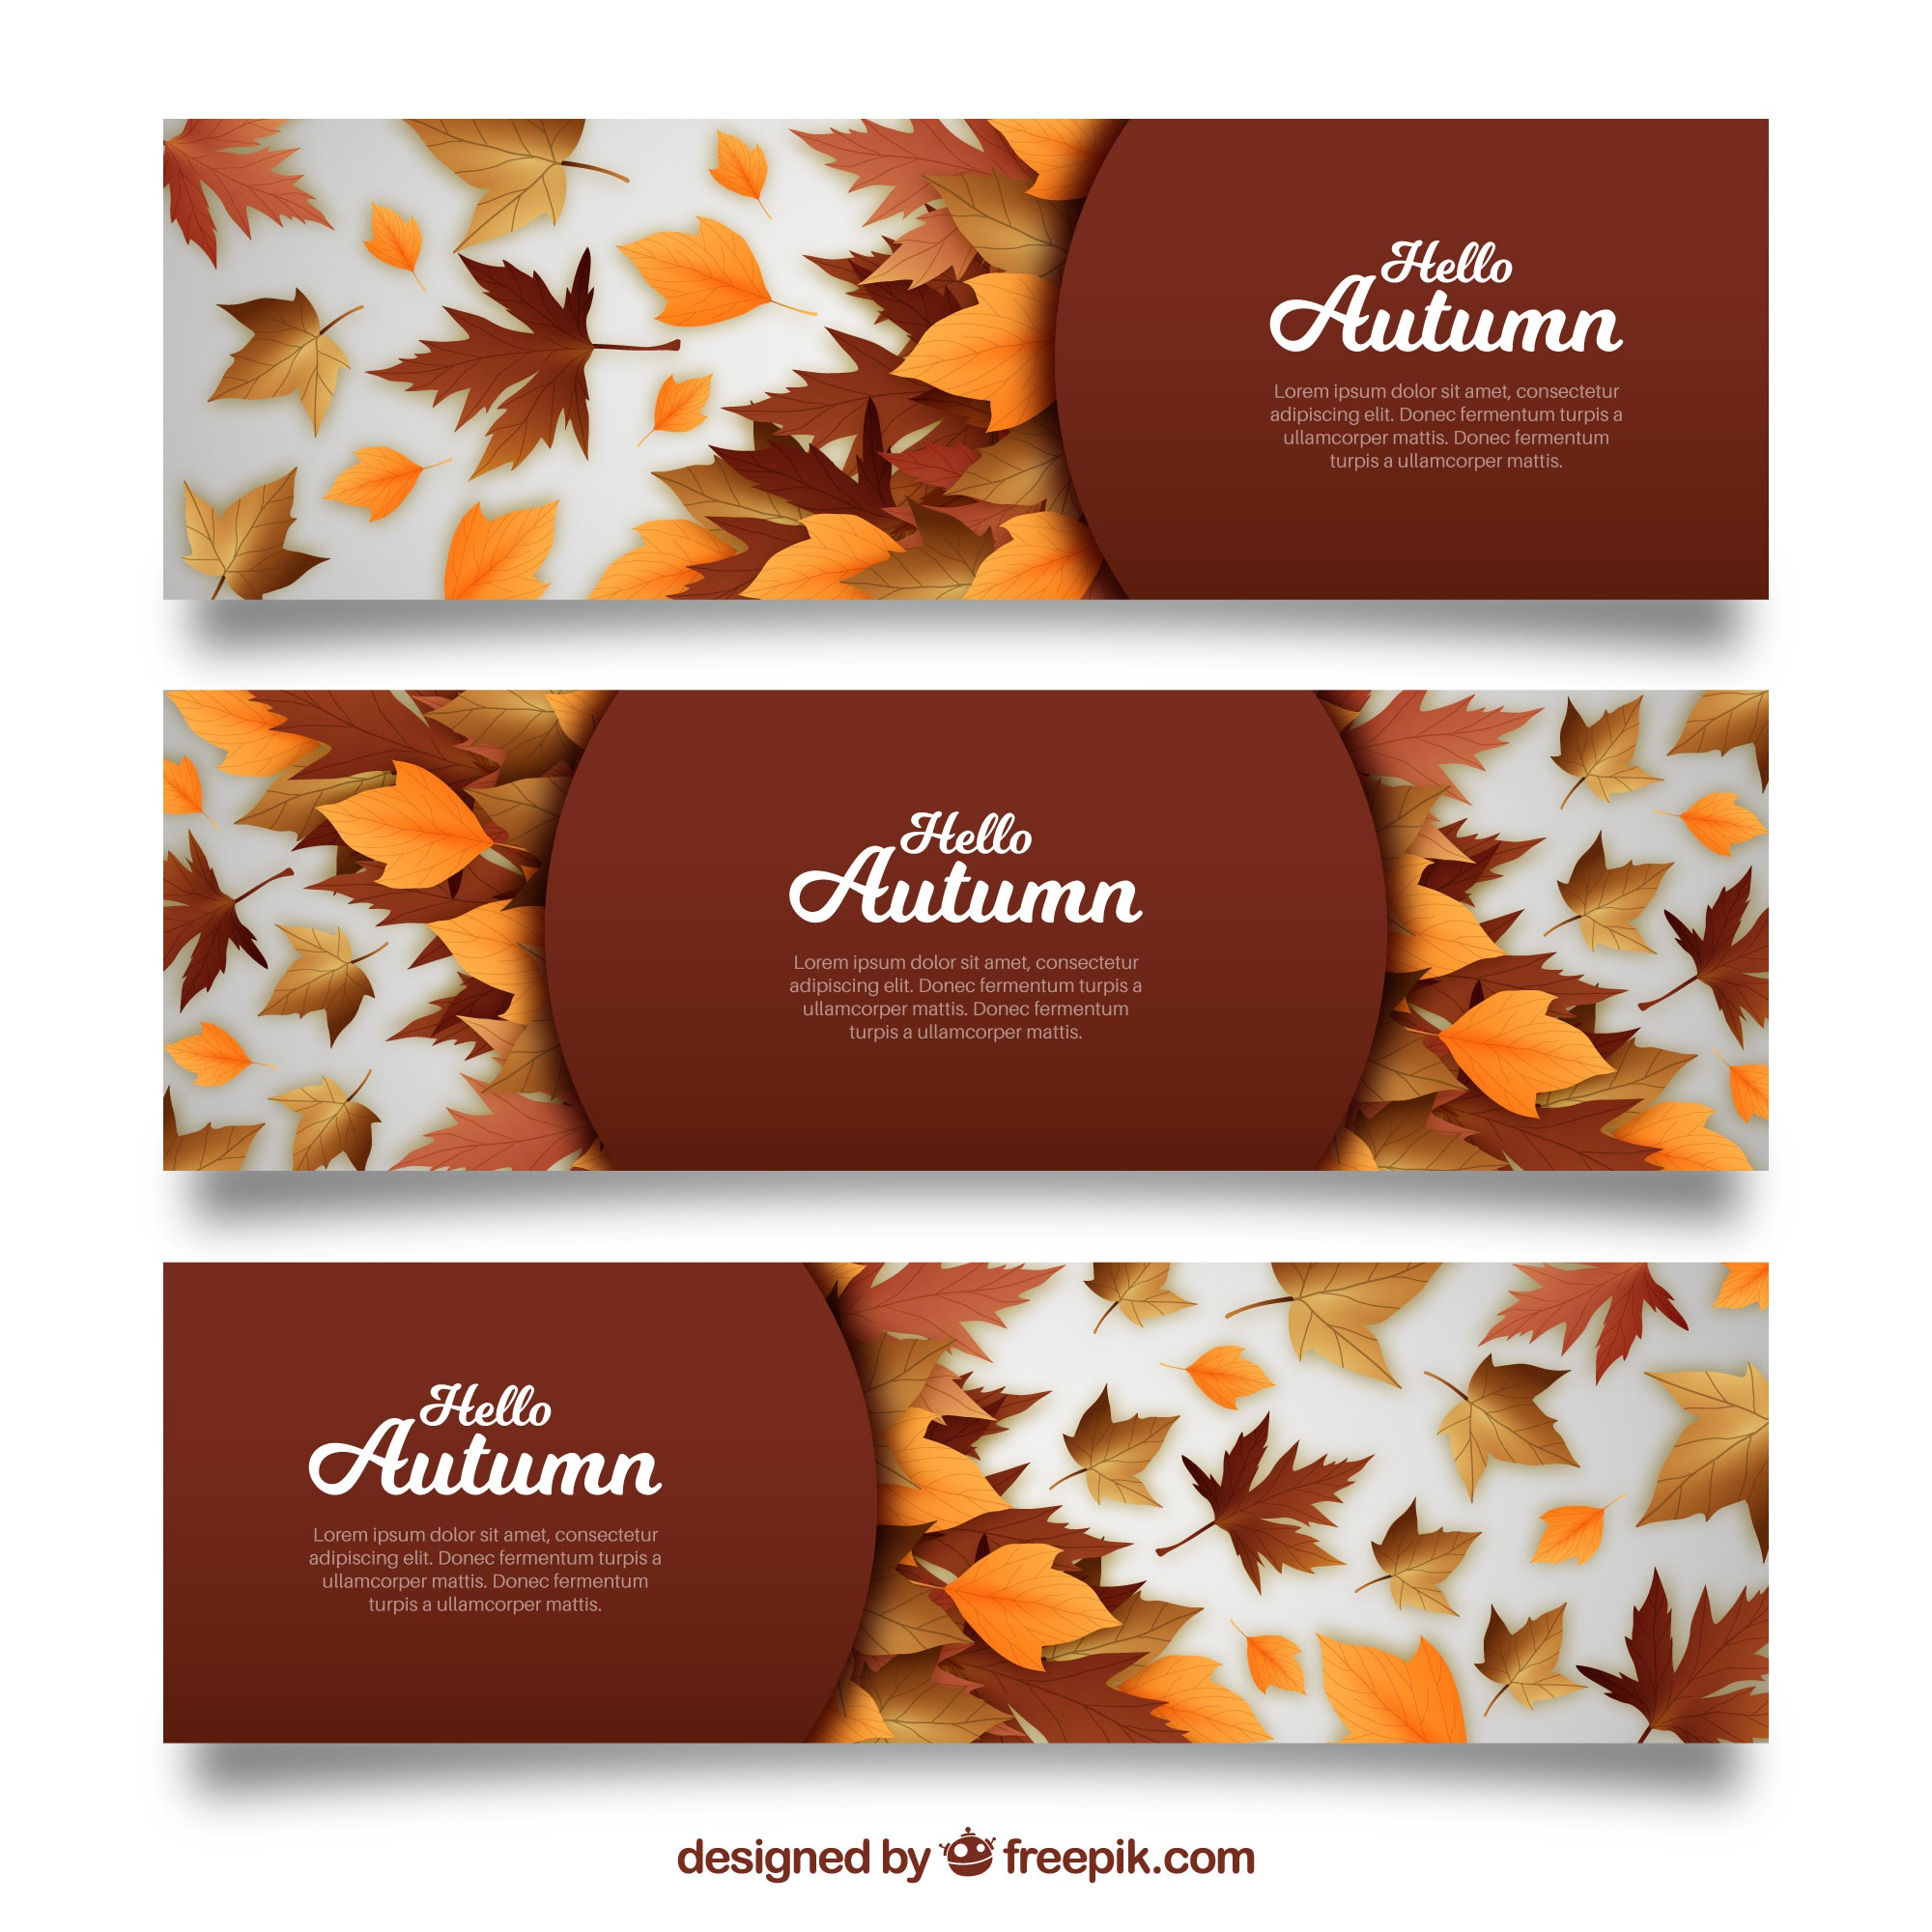 Autumn banner collection with realistic design